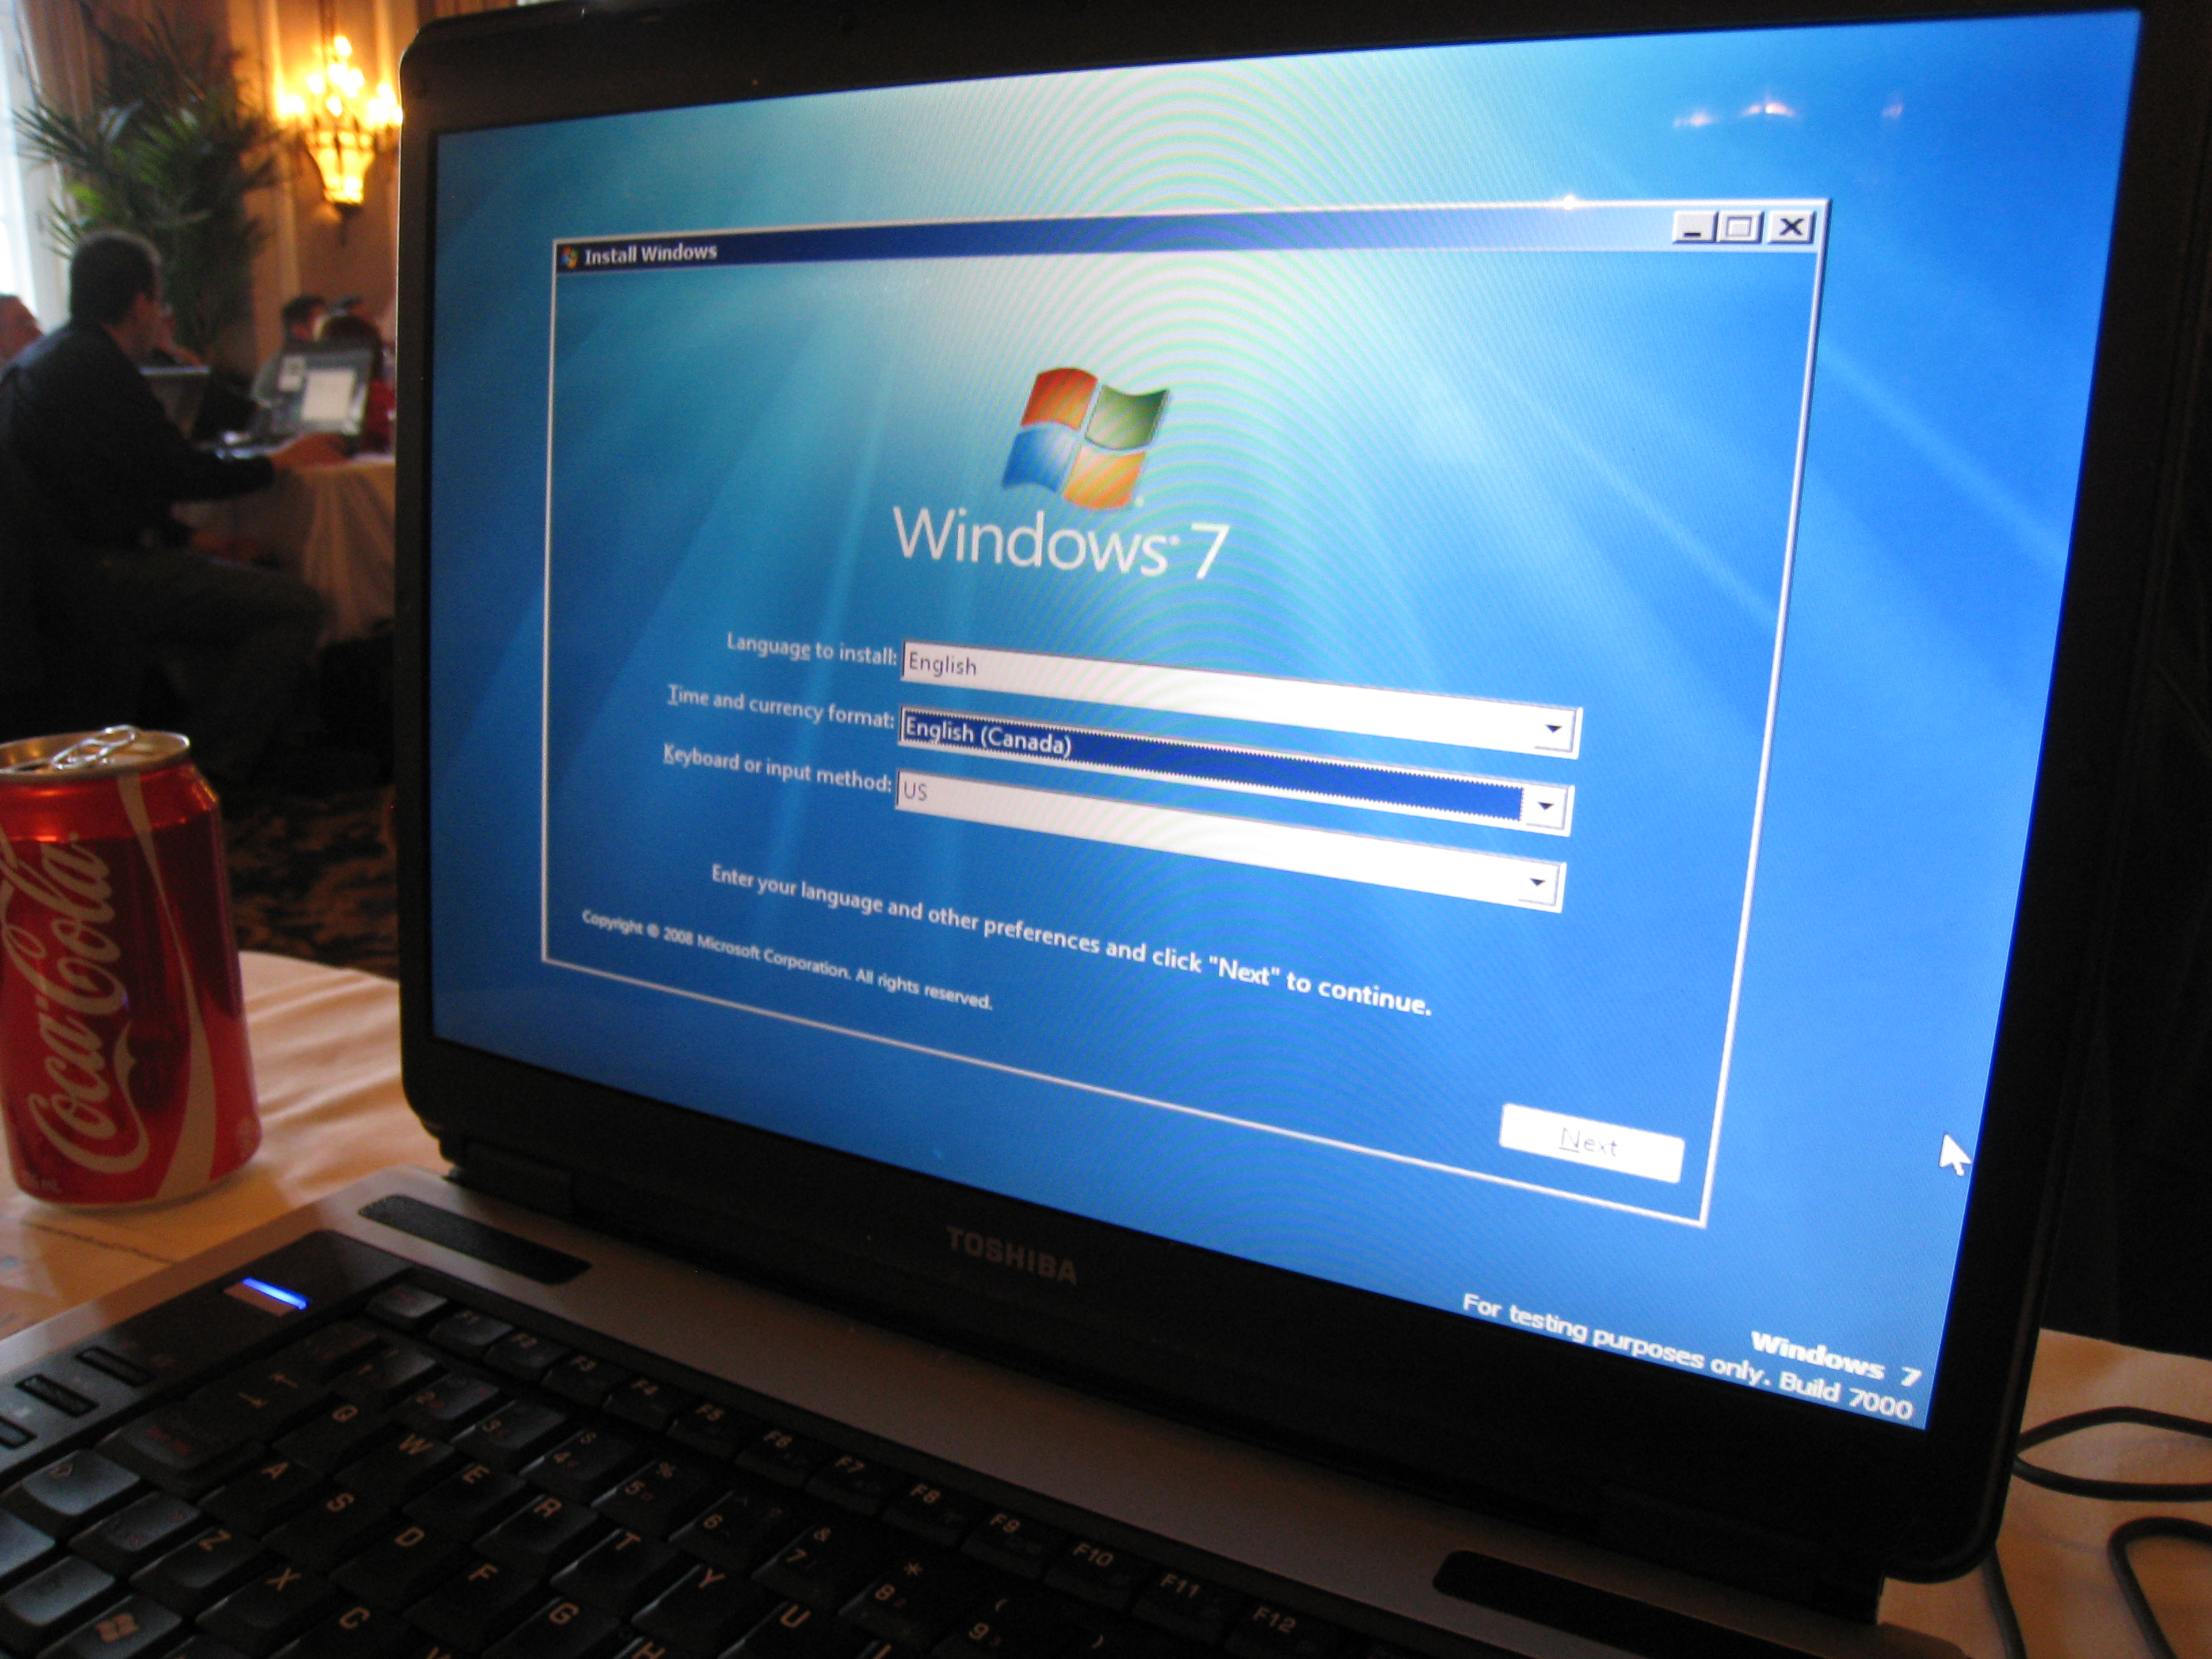 Why the man who tried to sell Windows recovery discs will go